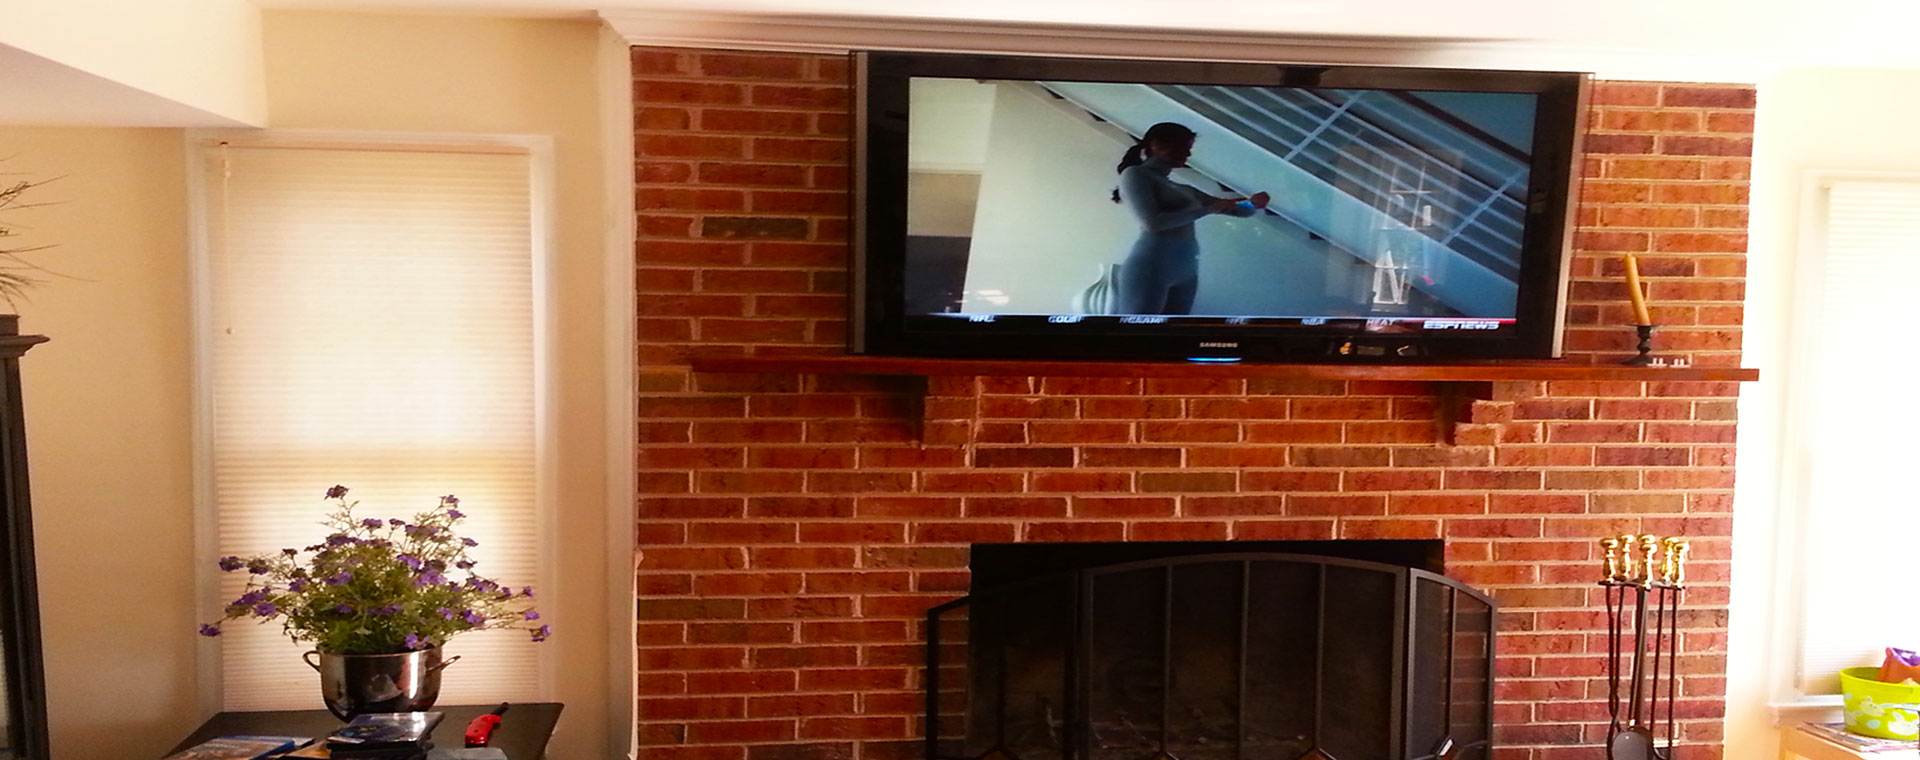 Installing Tv Above Fireplace American Hwy